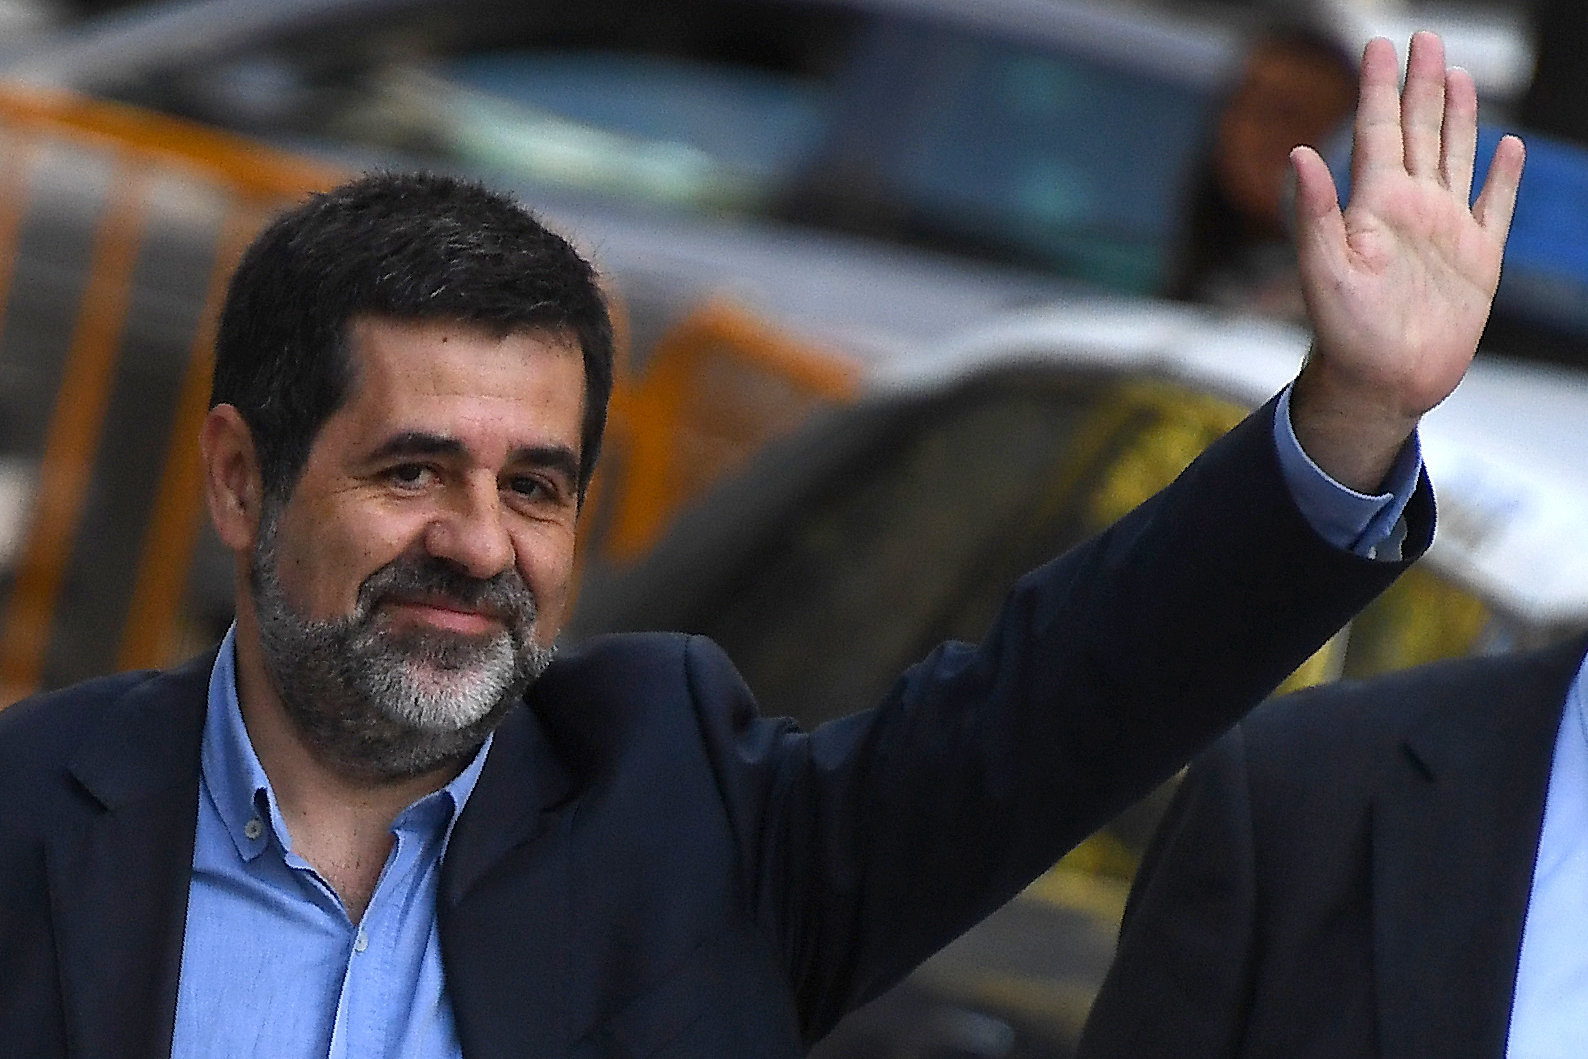 Jordi Sànchez said that a negotiated referendum would be held in the next  few years